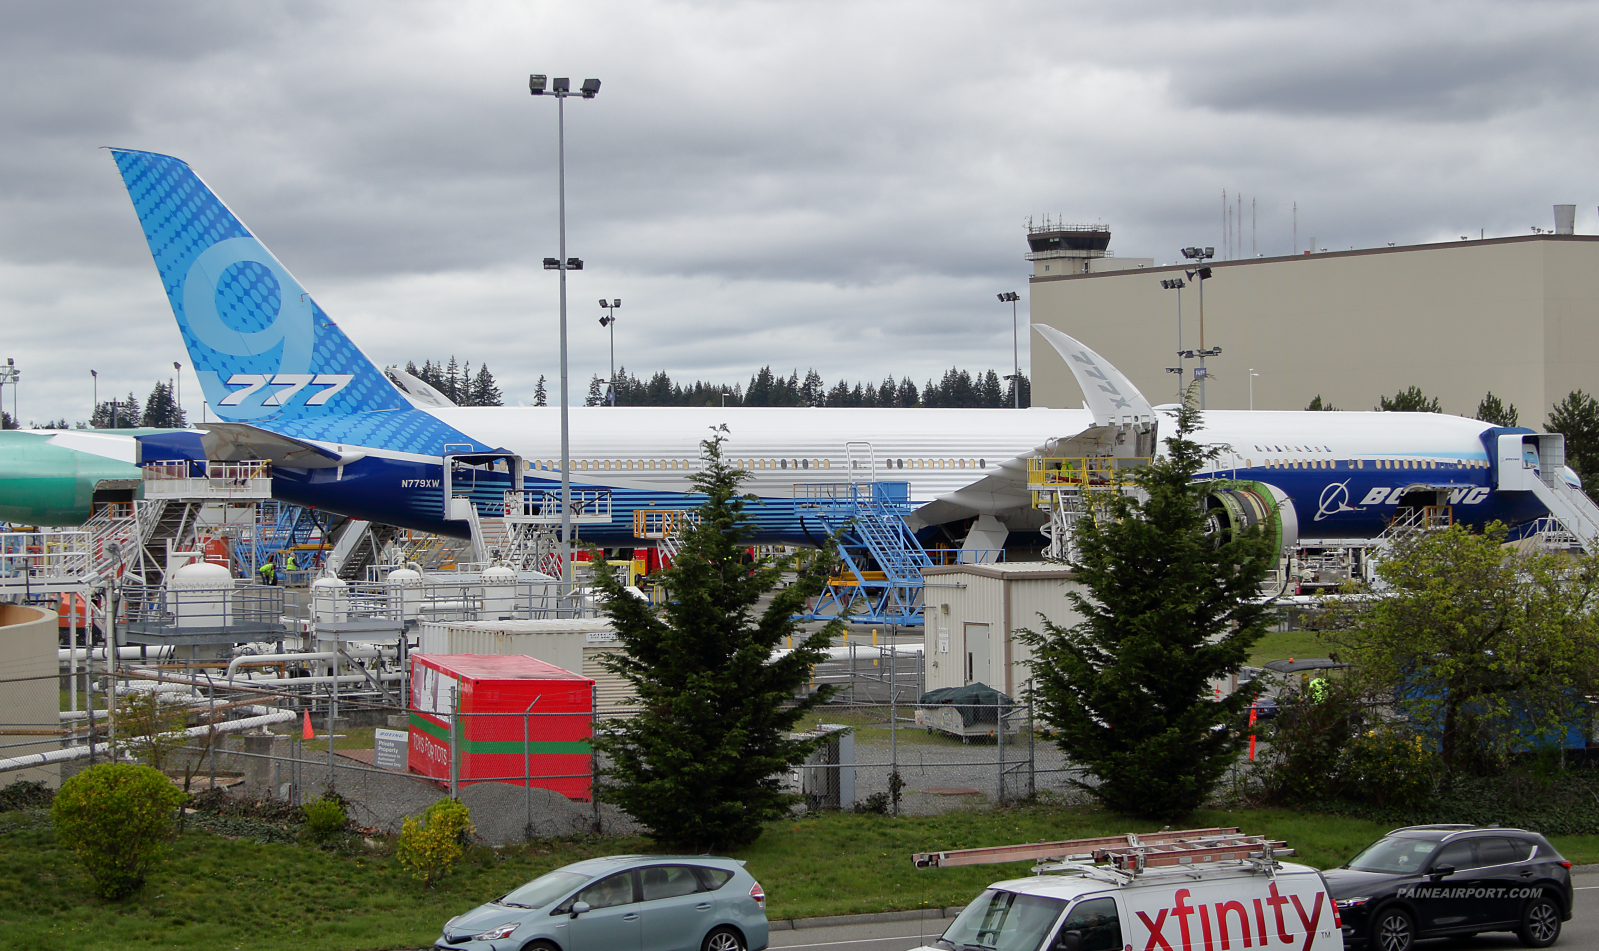 777-9 N779XW at the Boeing Everett fuel dock